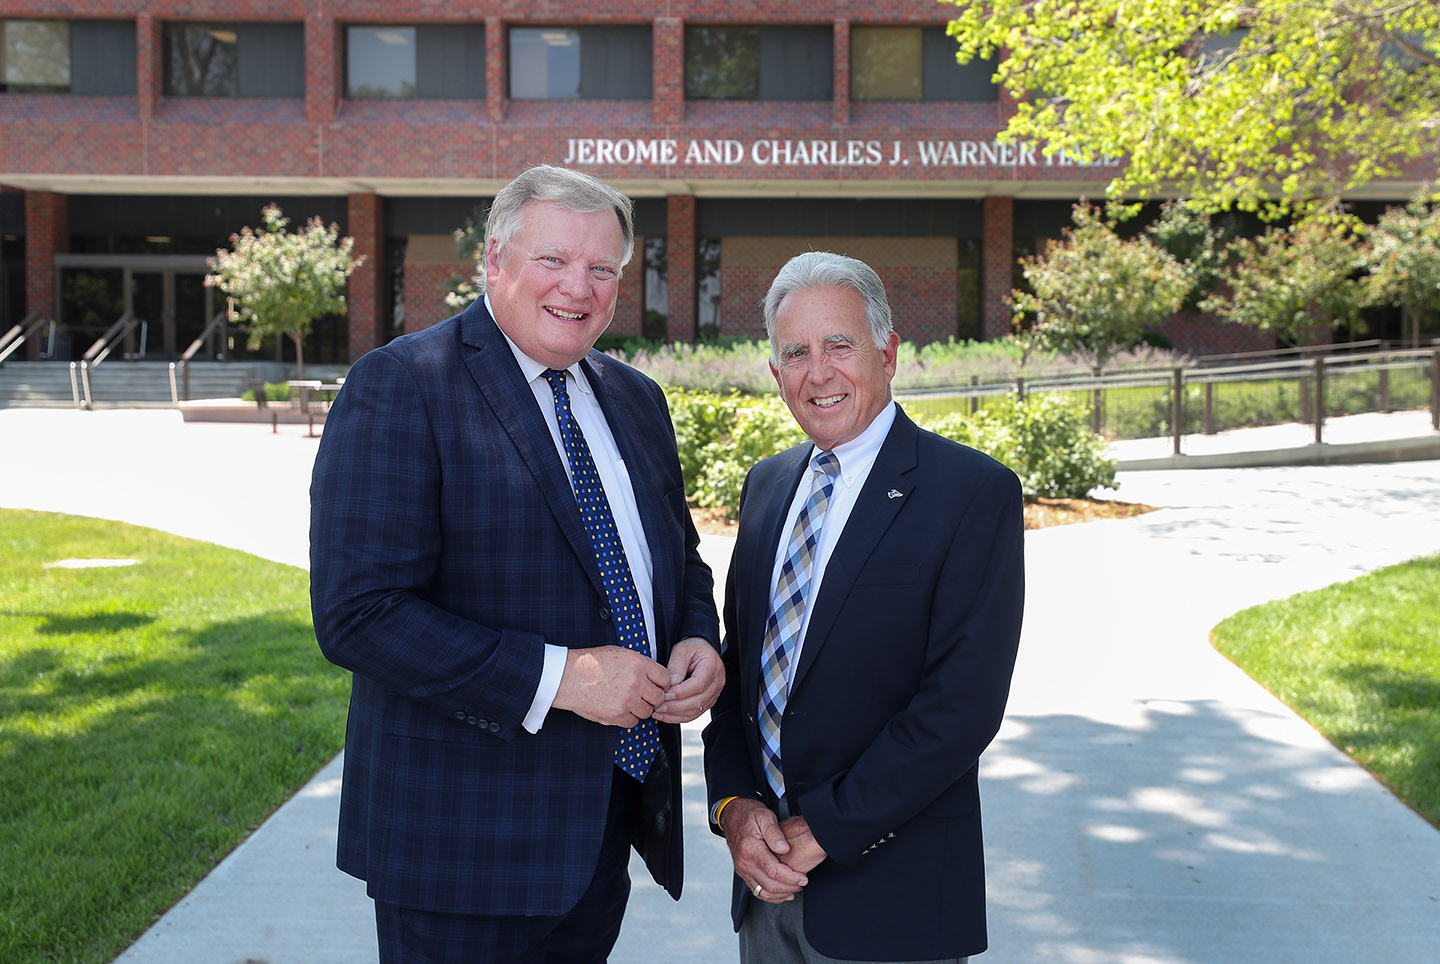 Doug Kristensen and Pete Kotsiopulos are pictured in front of Warner Hall on the UNK campus. The building is named after Charles J. Warner and his son Jerome Warner, two prominent former state senators who played a significant role in UNK's history.